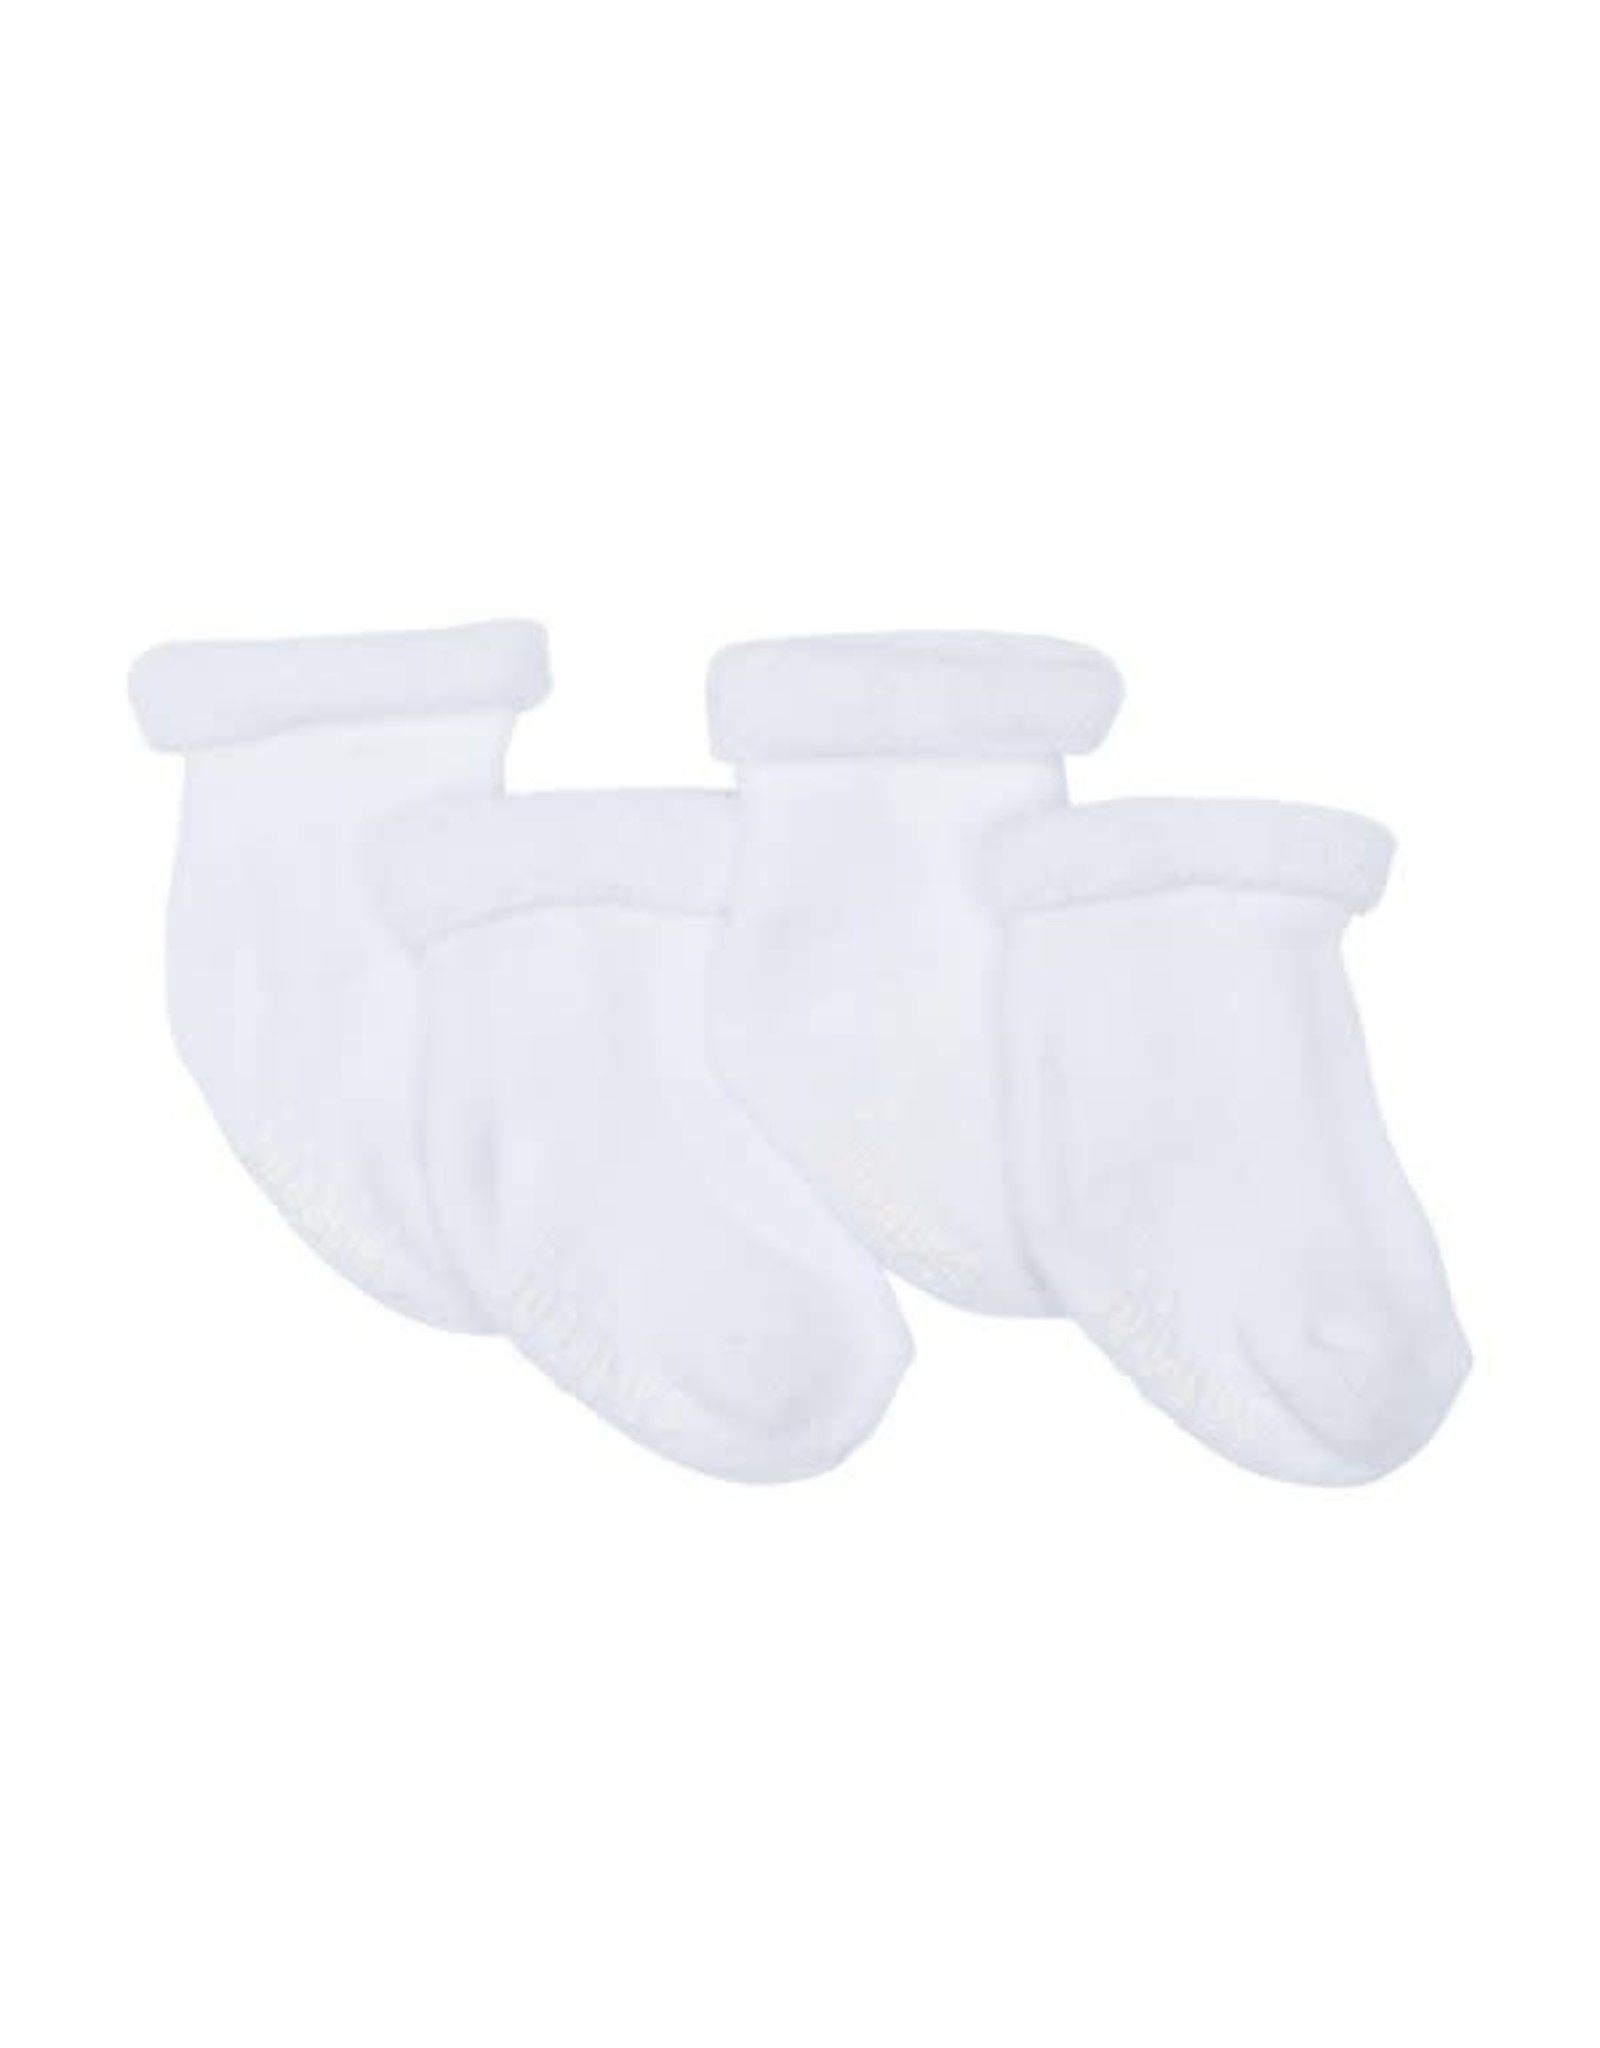 Juddlies Infant Socks, 2 pairs, White